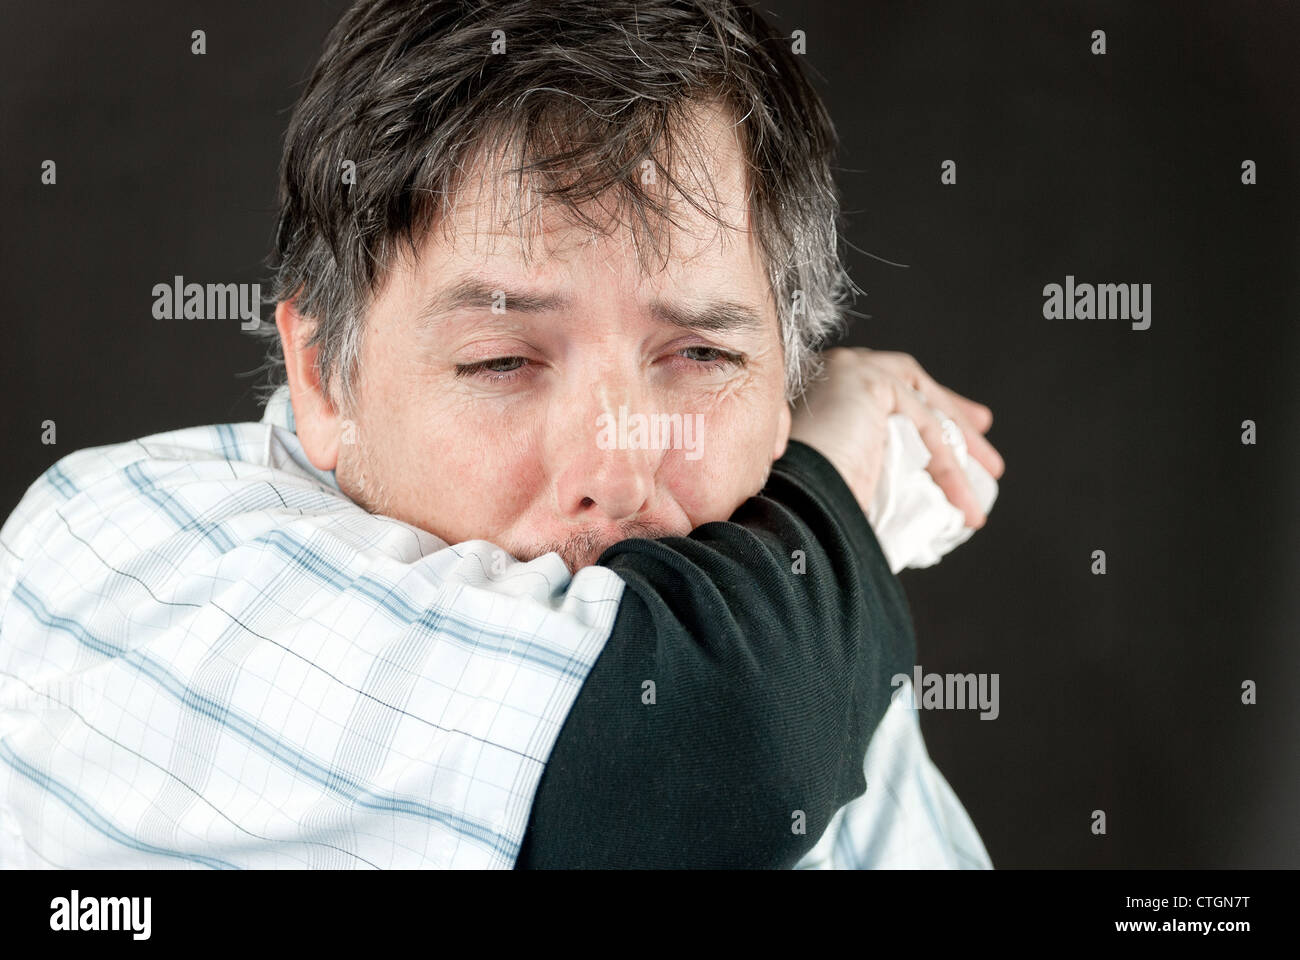 Close-up of a man stifling a sneeze in his elbow. - Stock Image